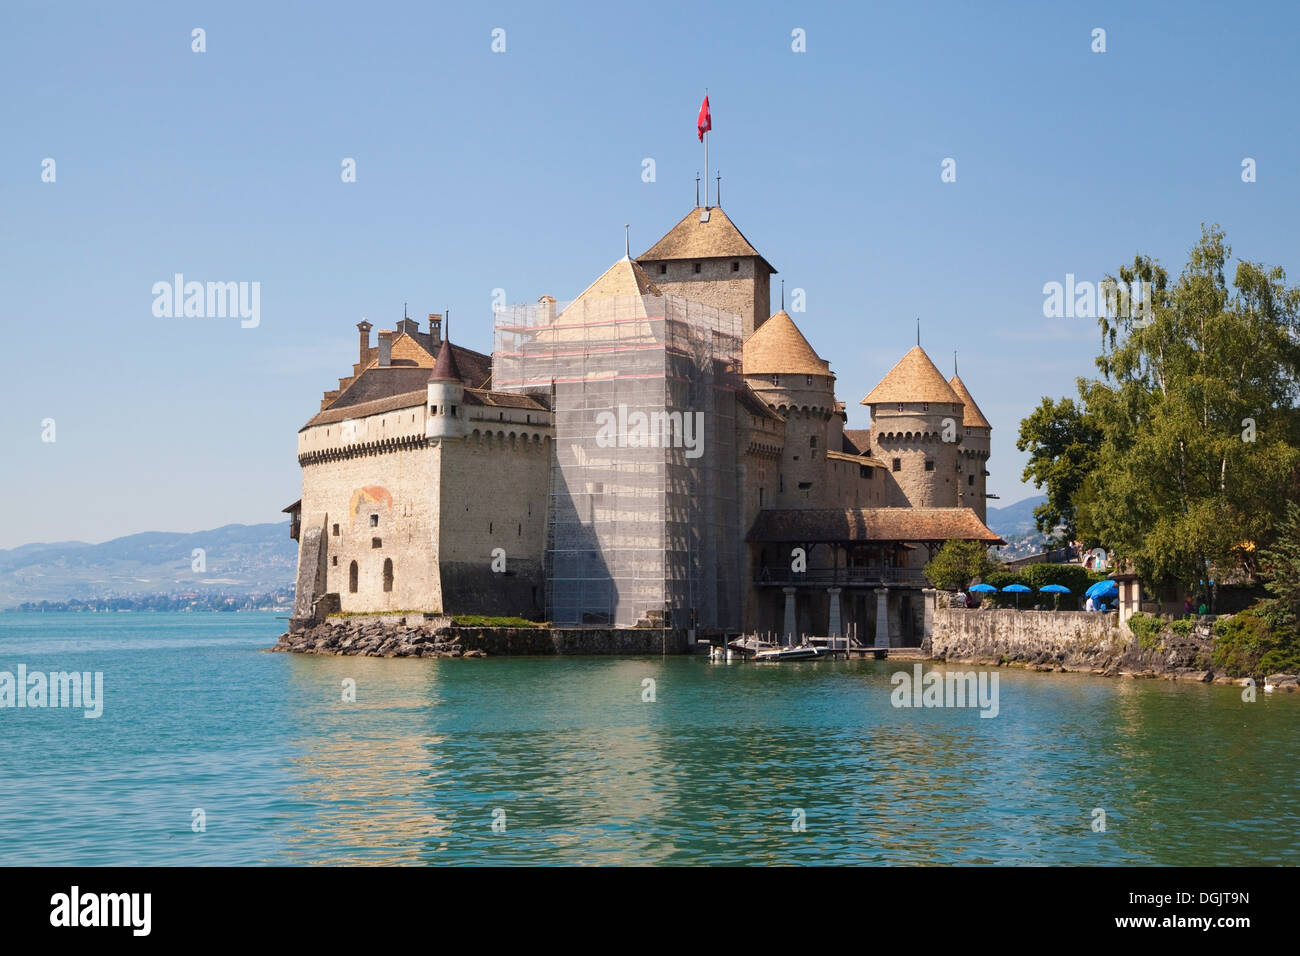 Chillon Castle on the shore of the Lake Leman in Switzerland. - Stock Image